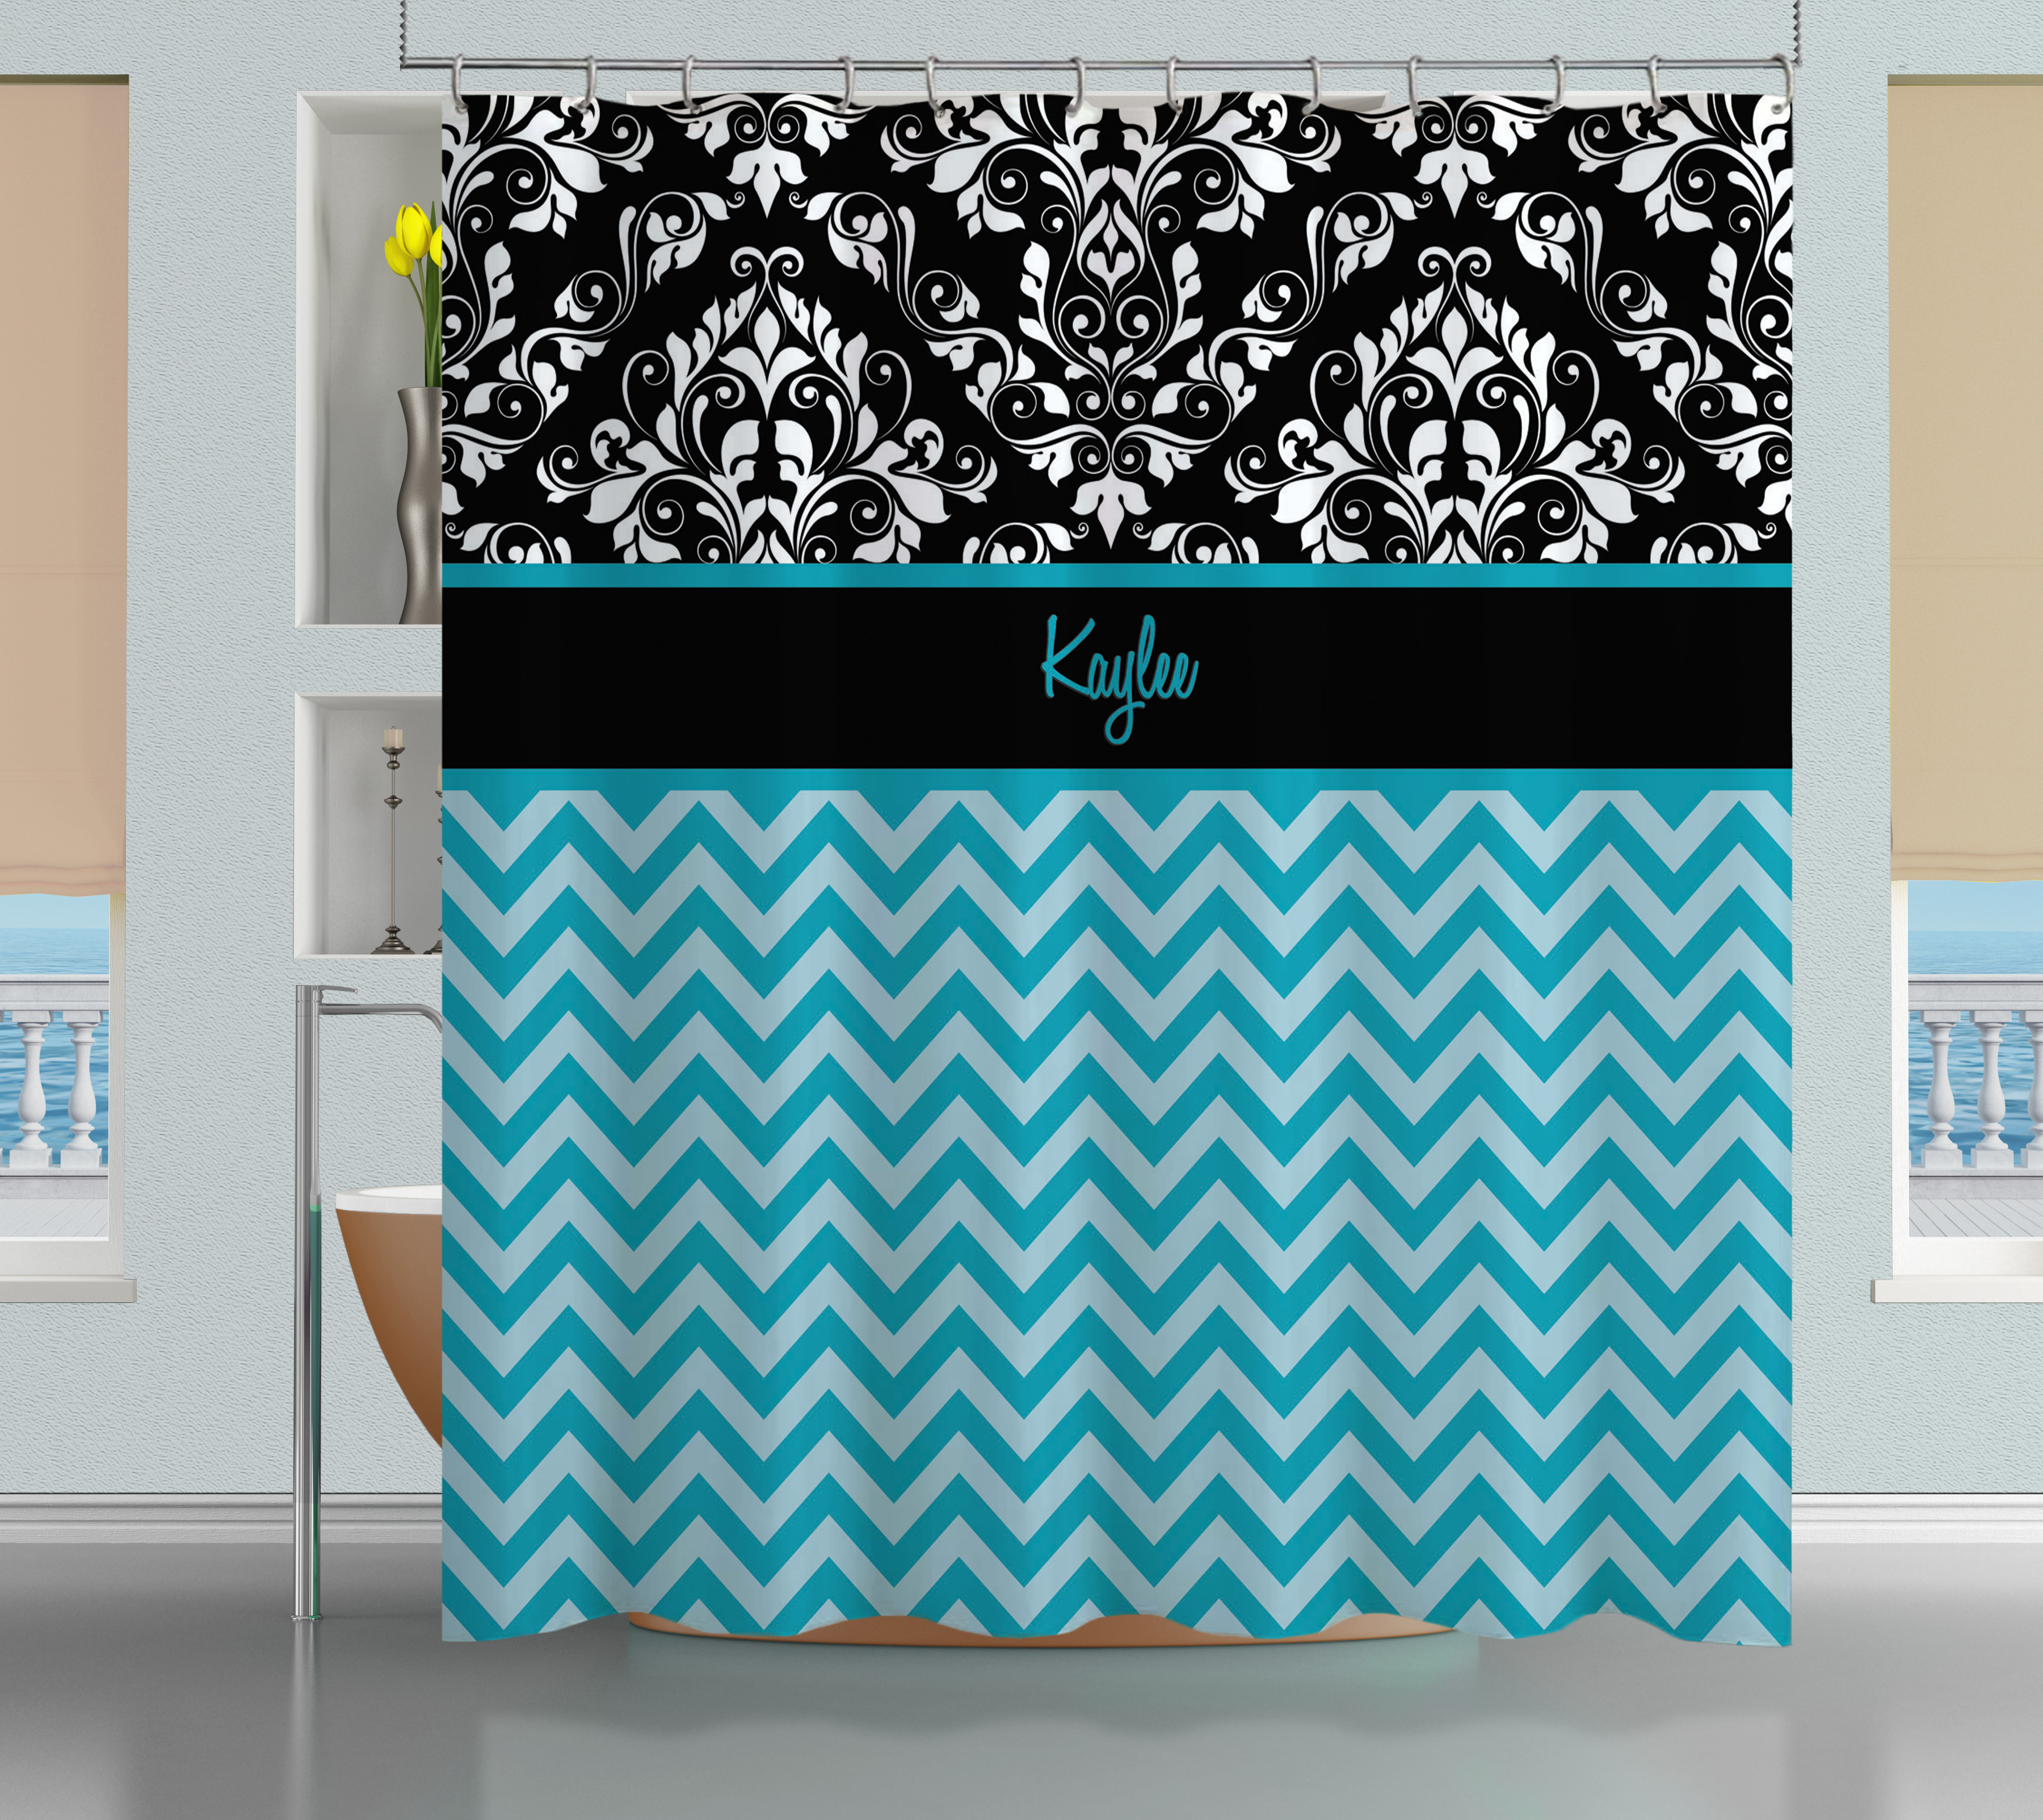 Blue Chevron And Black And White Damask Shower Curtain Black Fabric Extra La